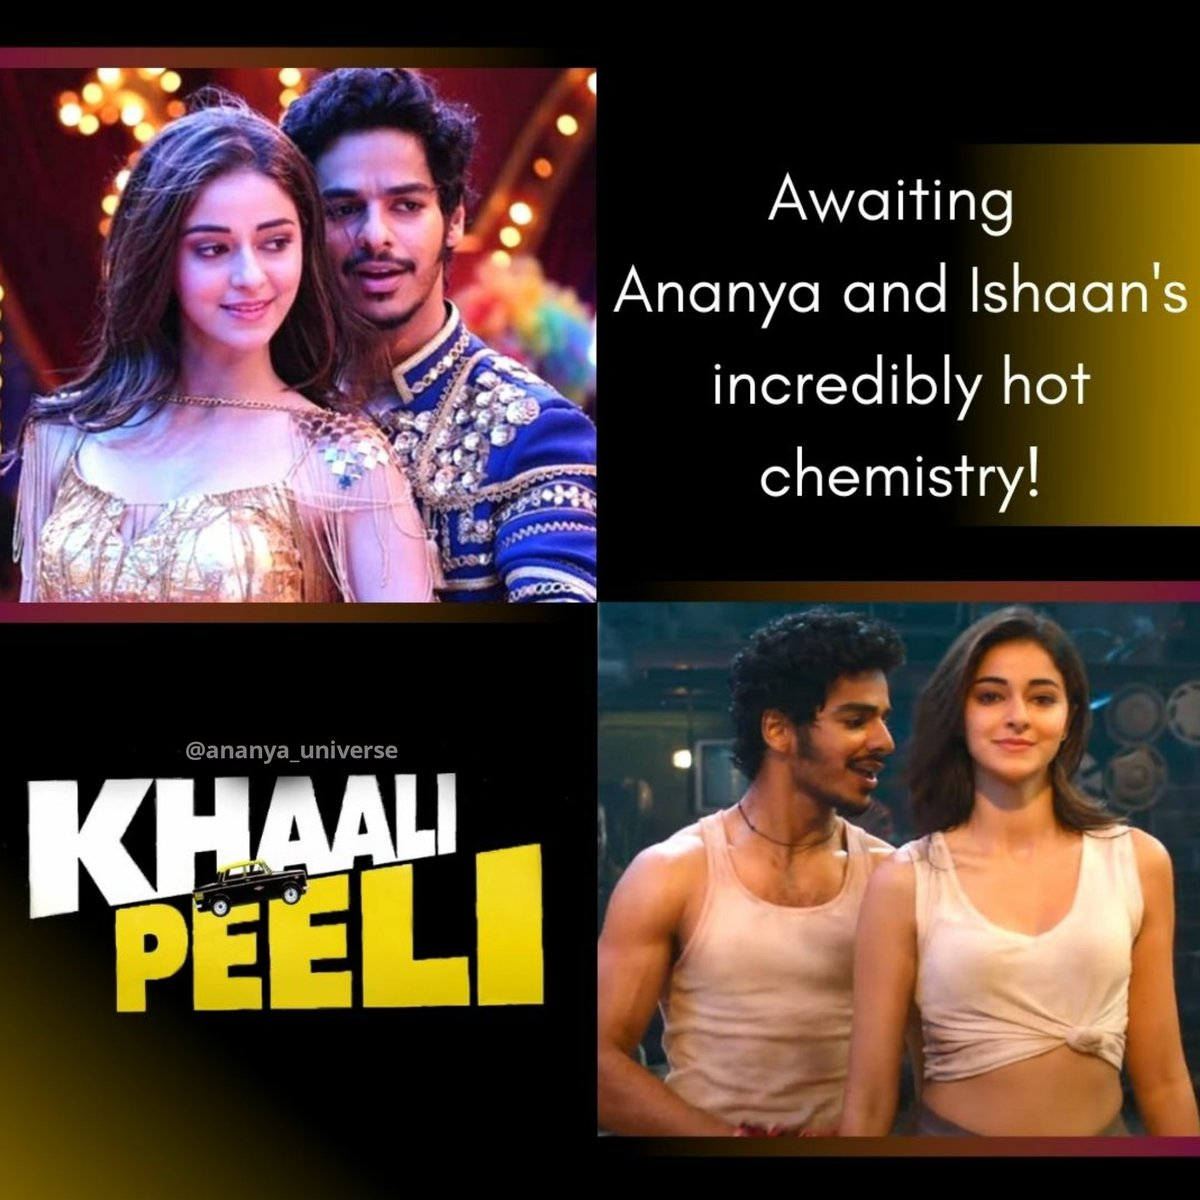 So excited for #khaalipeeli!!! 😍❤️ Eagerly waiting for this amazing duo!! @ananyapandayy #ananyapanday https://t.co/JjFv8TO2C3